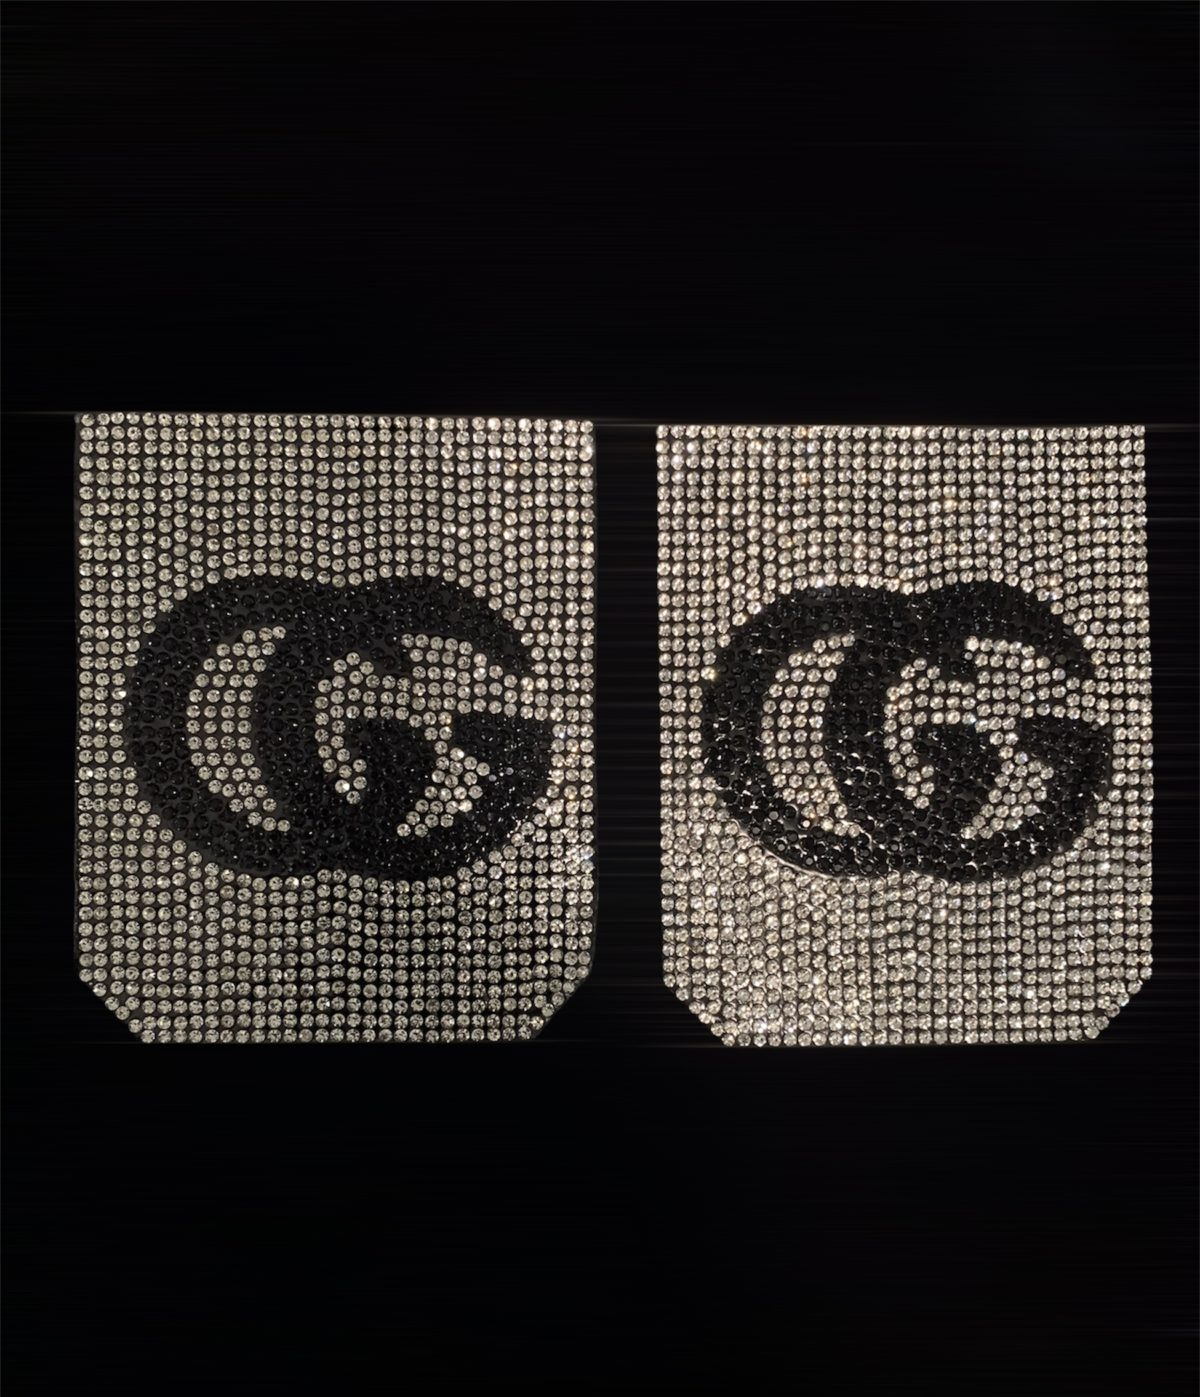 NEW Rhinestone GG Inspired Pocket Patch, Applique,  Iron On, Hot fix DIY clothing 1